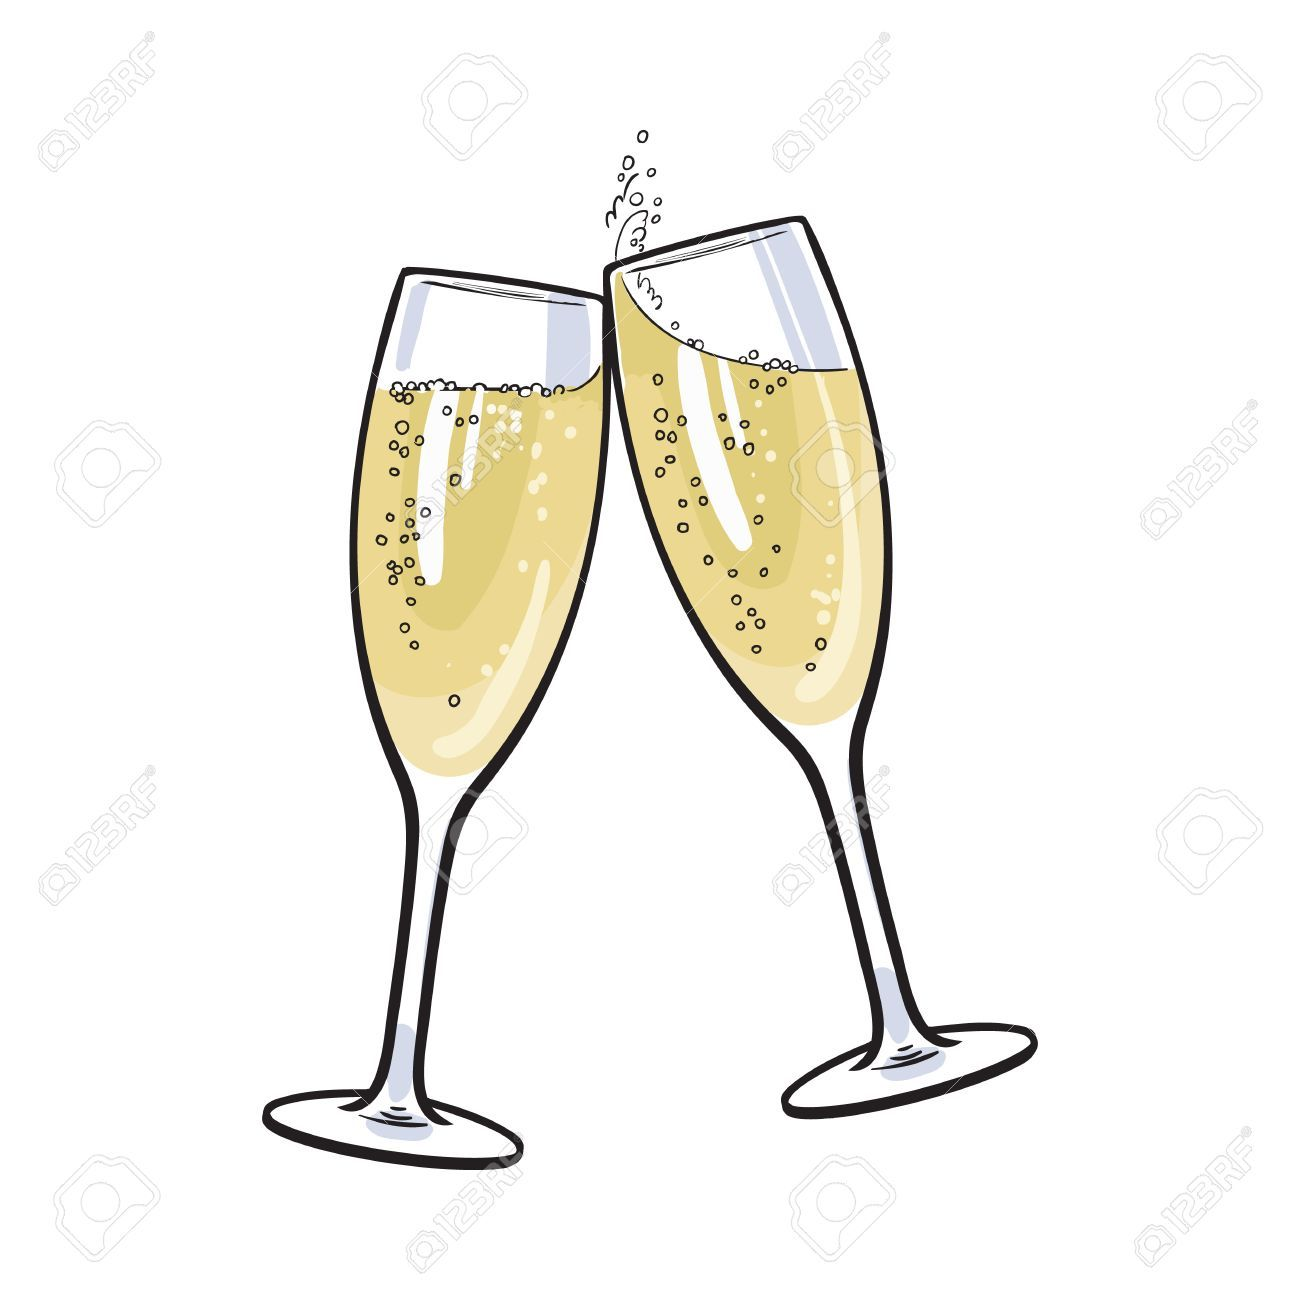 Pair Of Champagne Glasses Set Of Sketch Style Vector Illustration Champagne Glasses Wine Glass Images Champagne